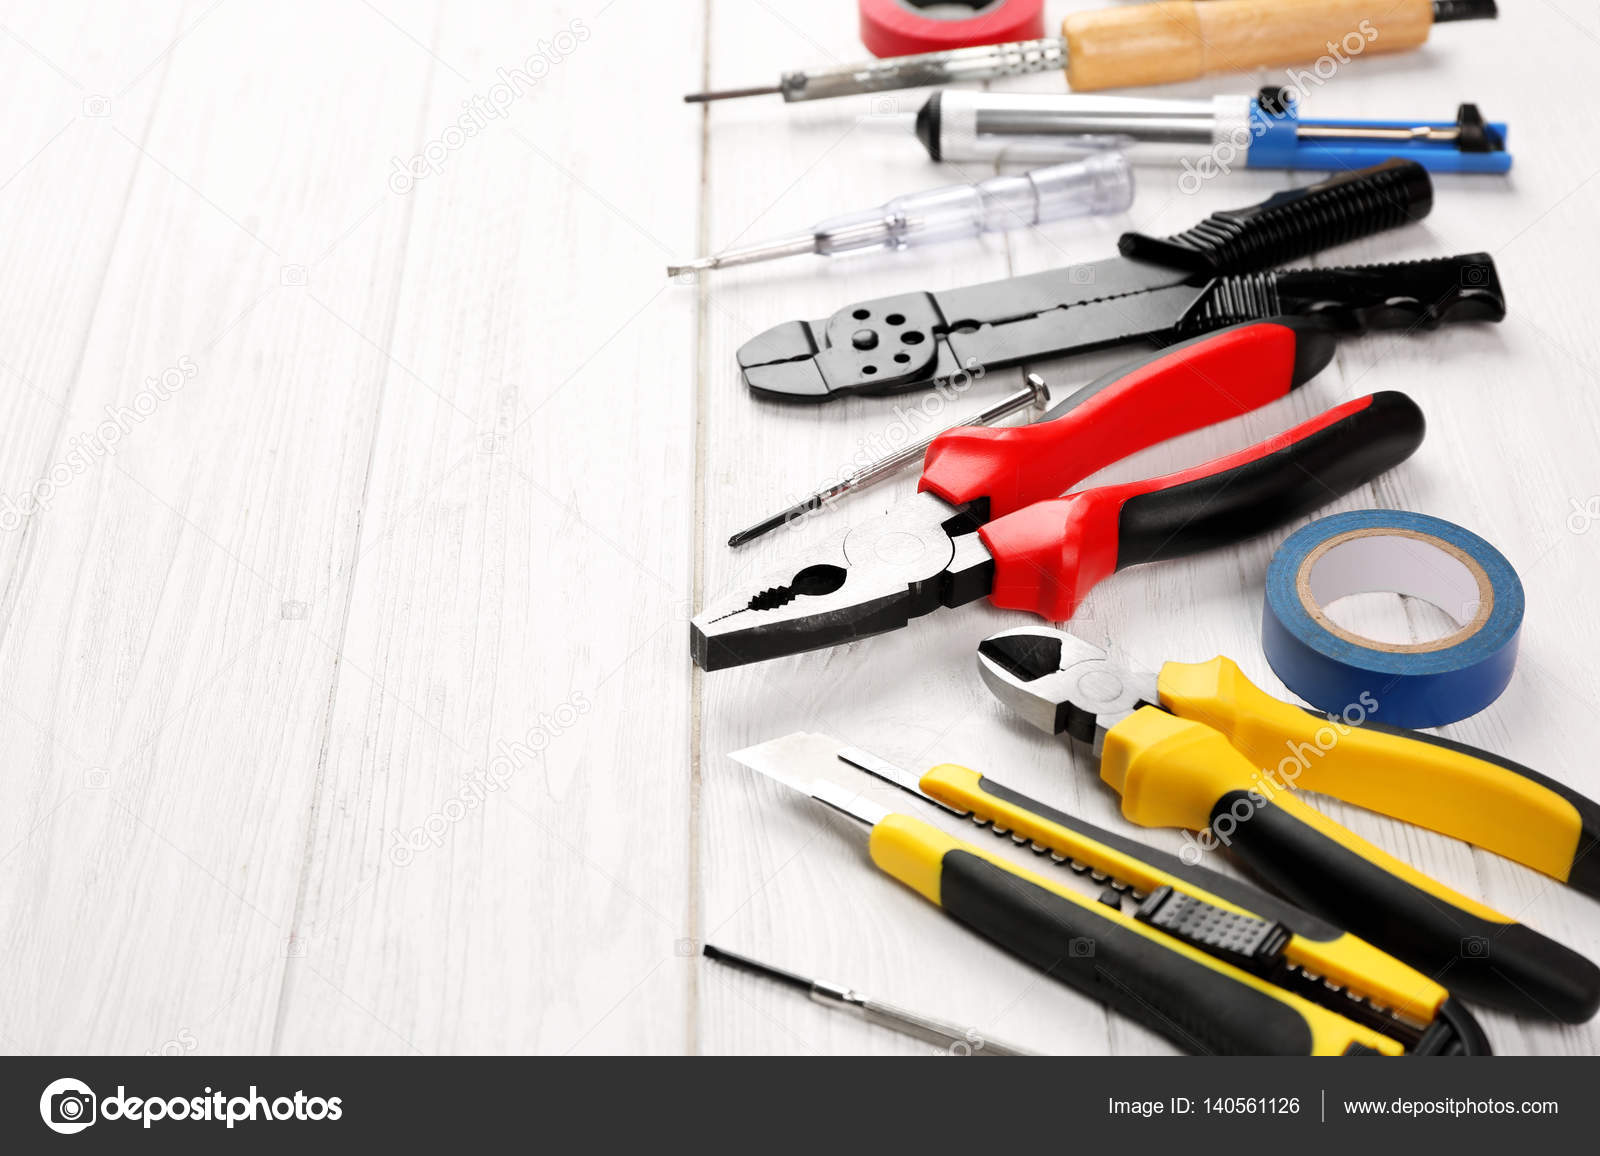 Electrical Tools Name And Image Different Electrical Tools Stock Photo C Belchonock 140561126